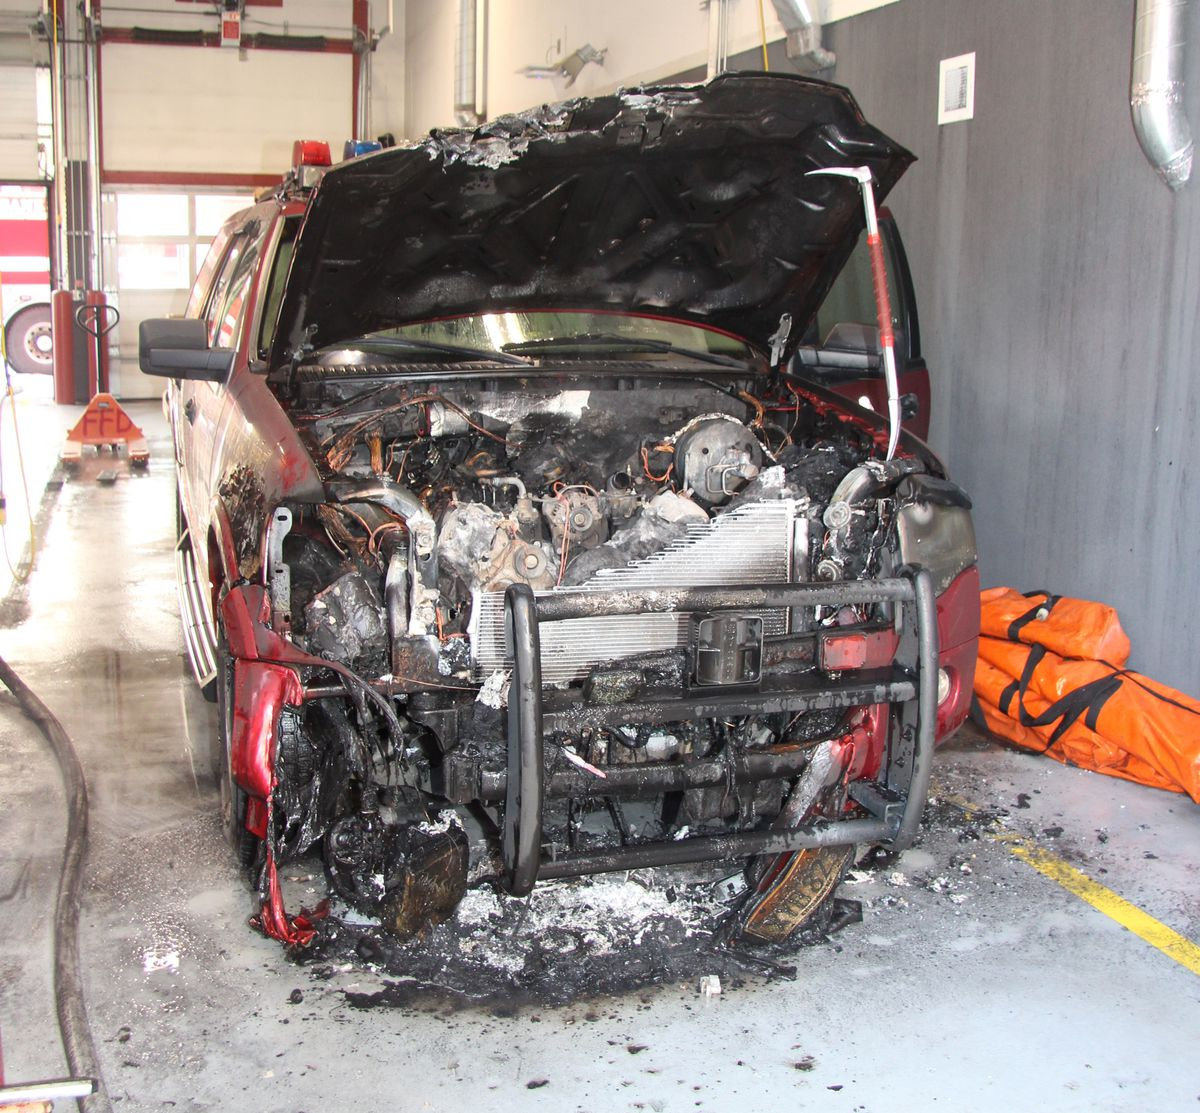 A Ford Expedition used as a Battalion Chief vehicle caught fire in a garage bay at Fairbanks Fire Department's downtown headquarters on Saturday, March 10, 2018. (Fairbanks Fire Department)